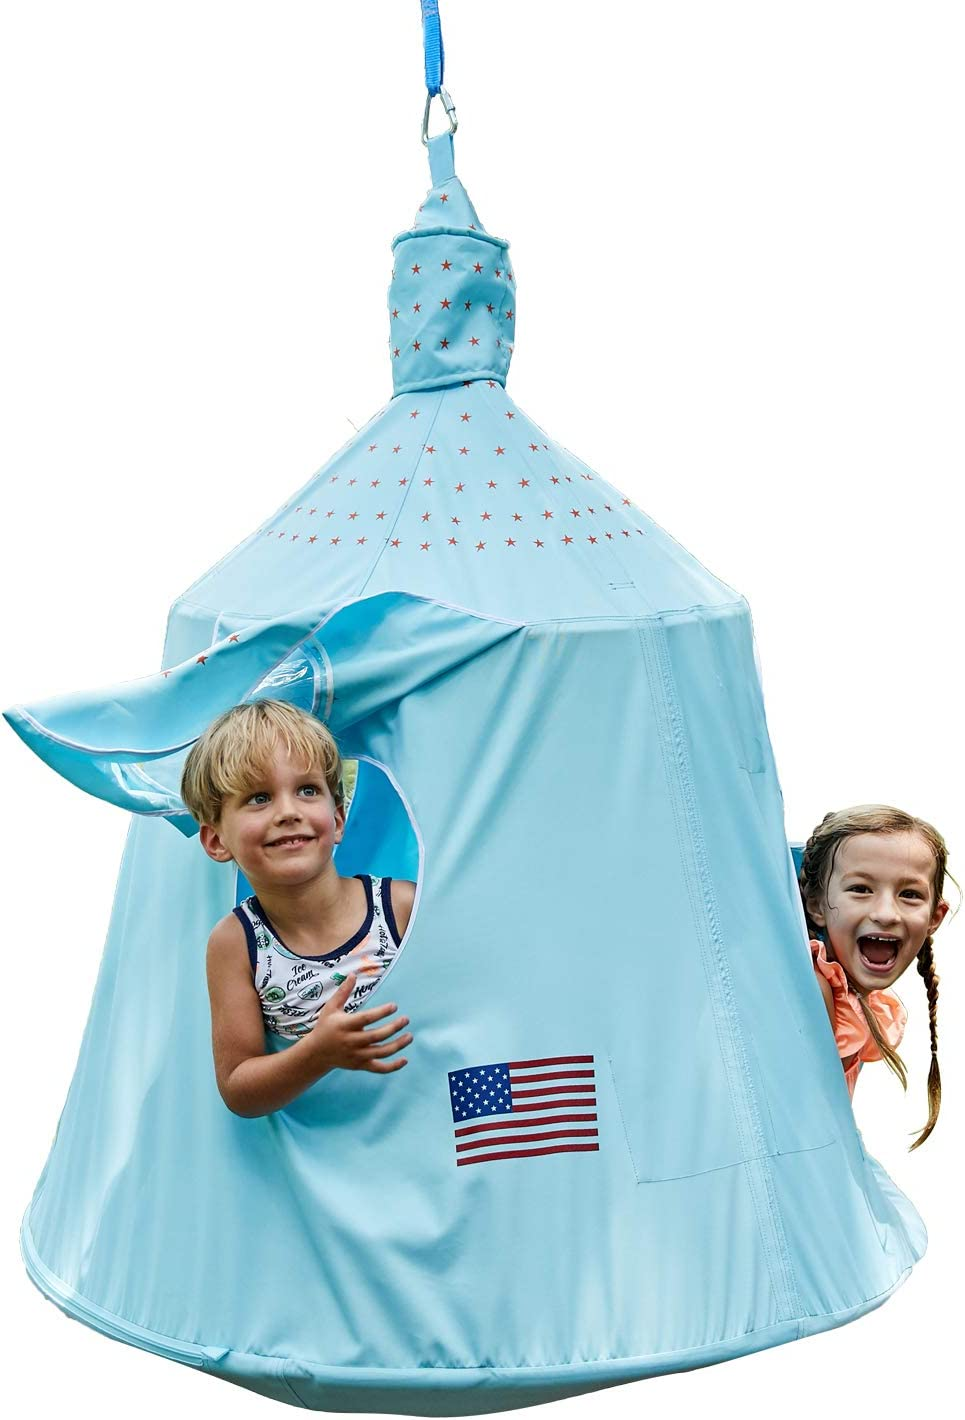 HAPPYPIE Kids Outdoor Waterproof Tree Play Tent, Hanging Space Capsule Swing Hammock, Ambient Lights Installation Accessories Included Sky Blue